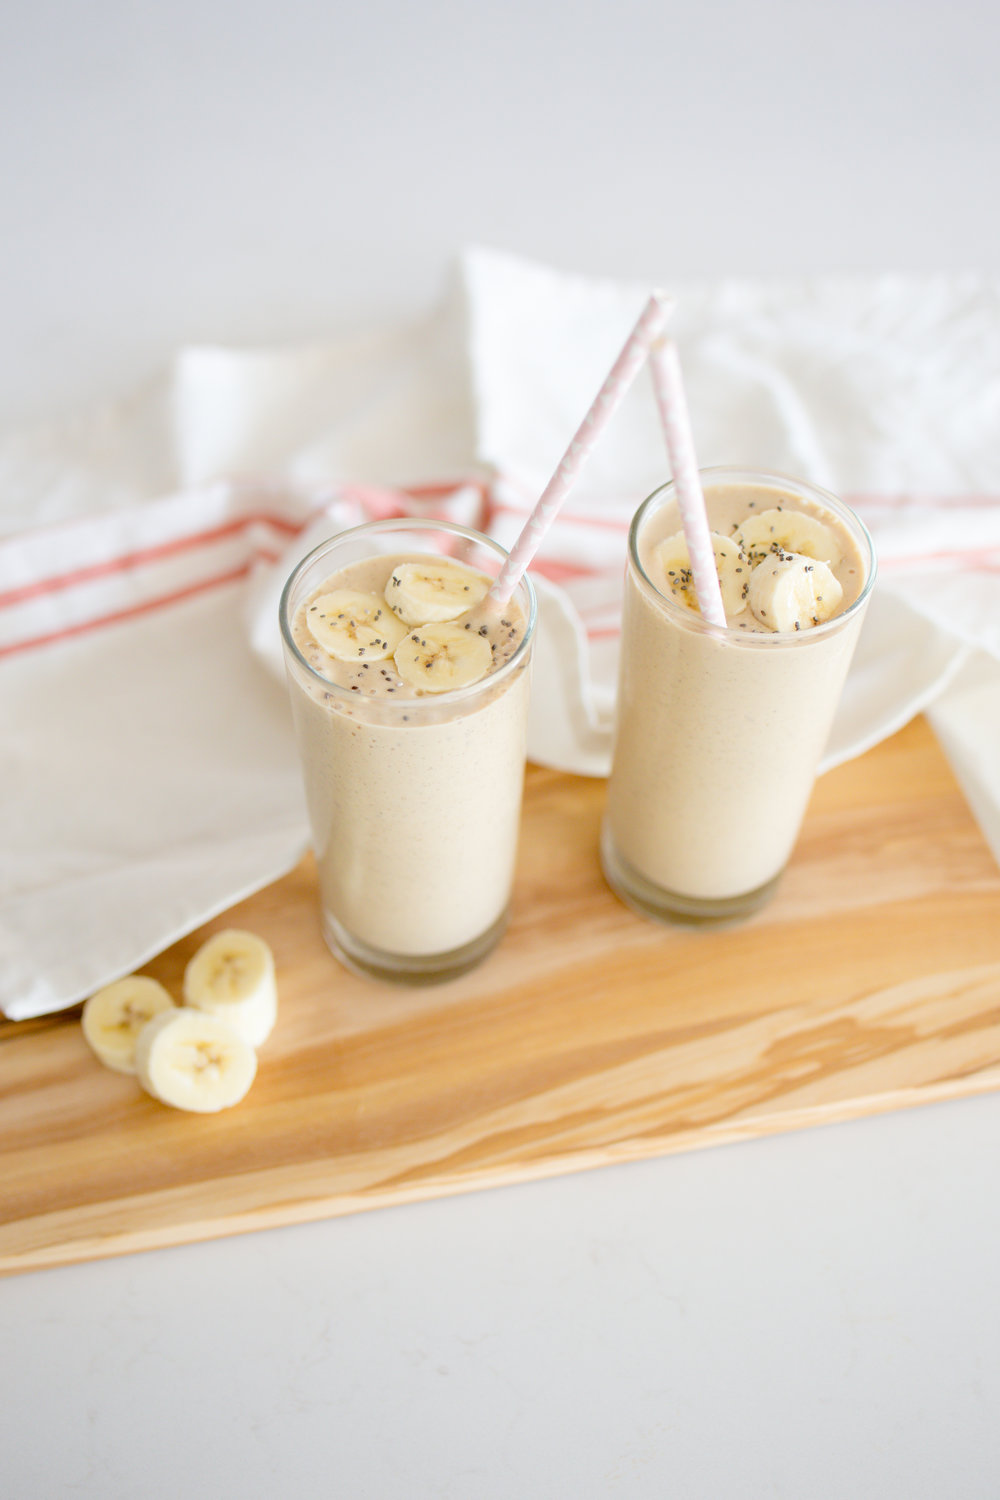 Vegan Peanut Butter Banana Protein Smoothie Smoothie